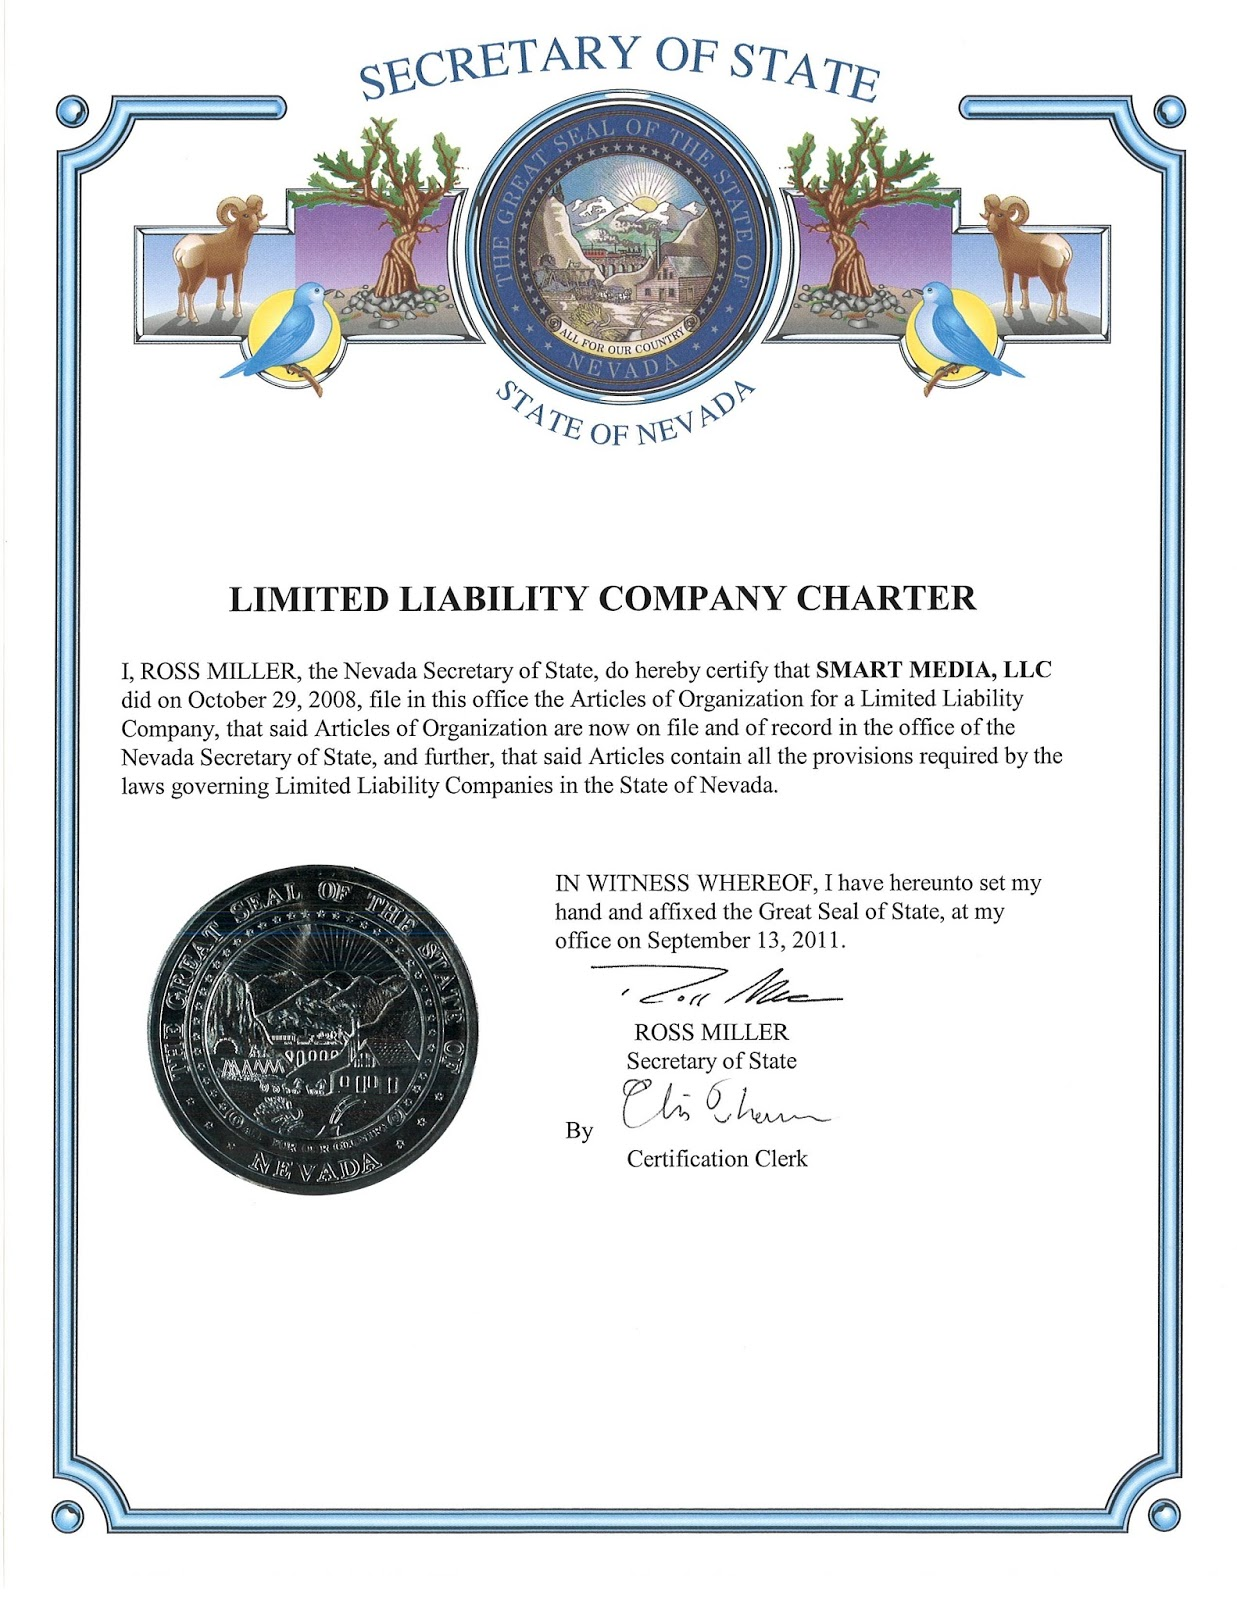 Yobsn Consulting Certificate Of Incorporation